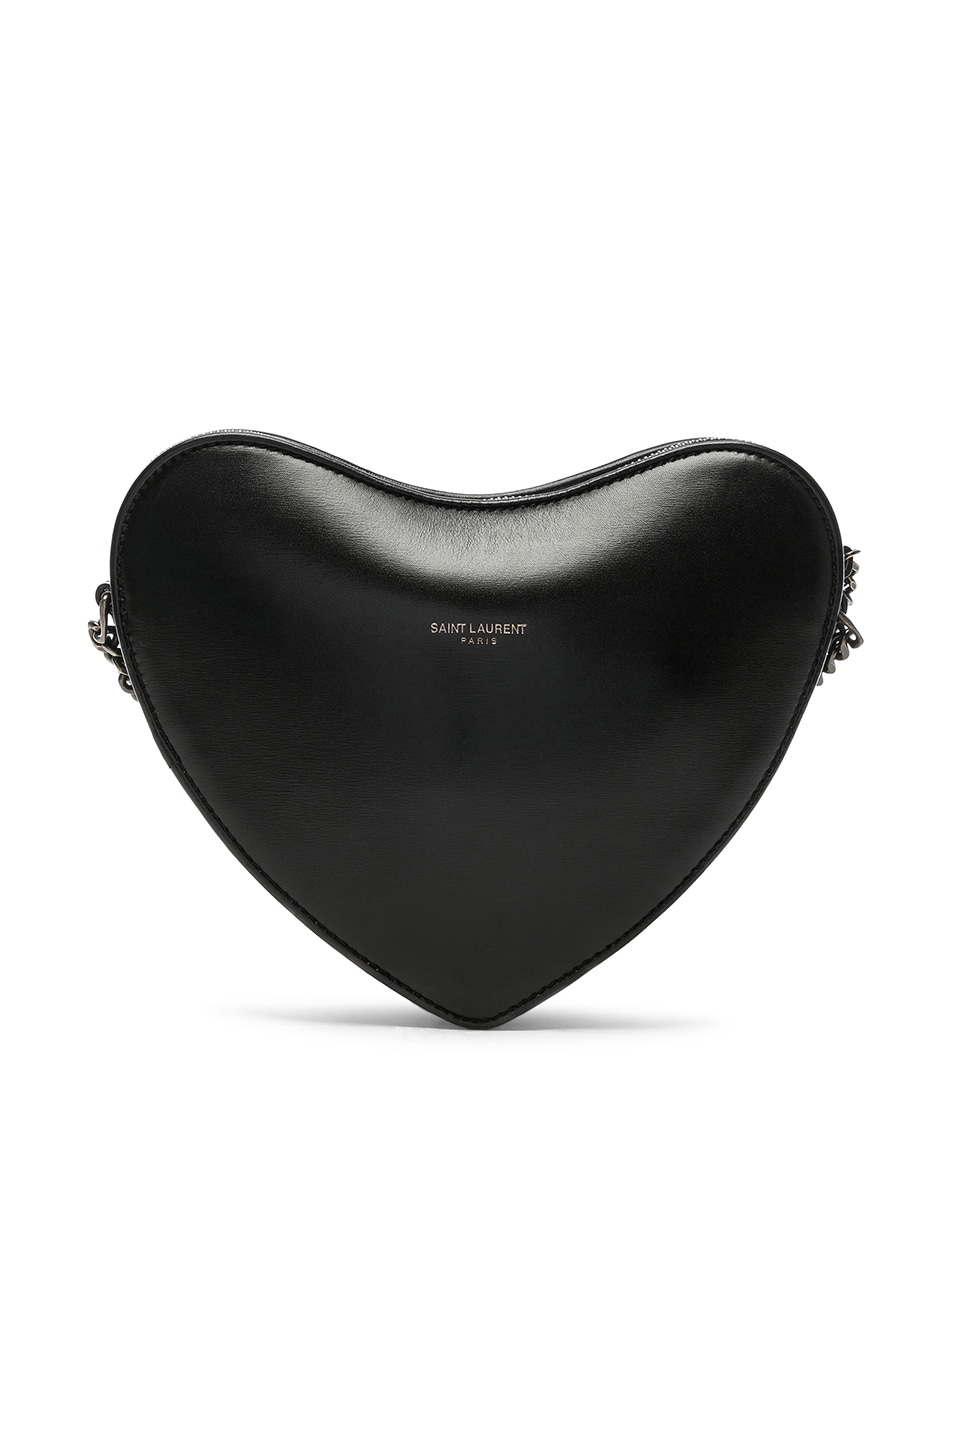 Image 3 of Saint Laurent Monogramme Heart Shoulder Bag in Black